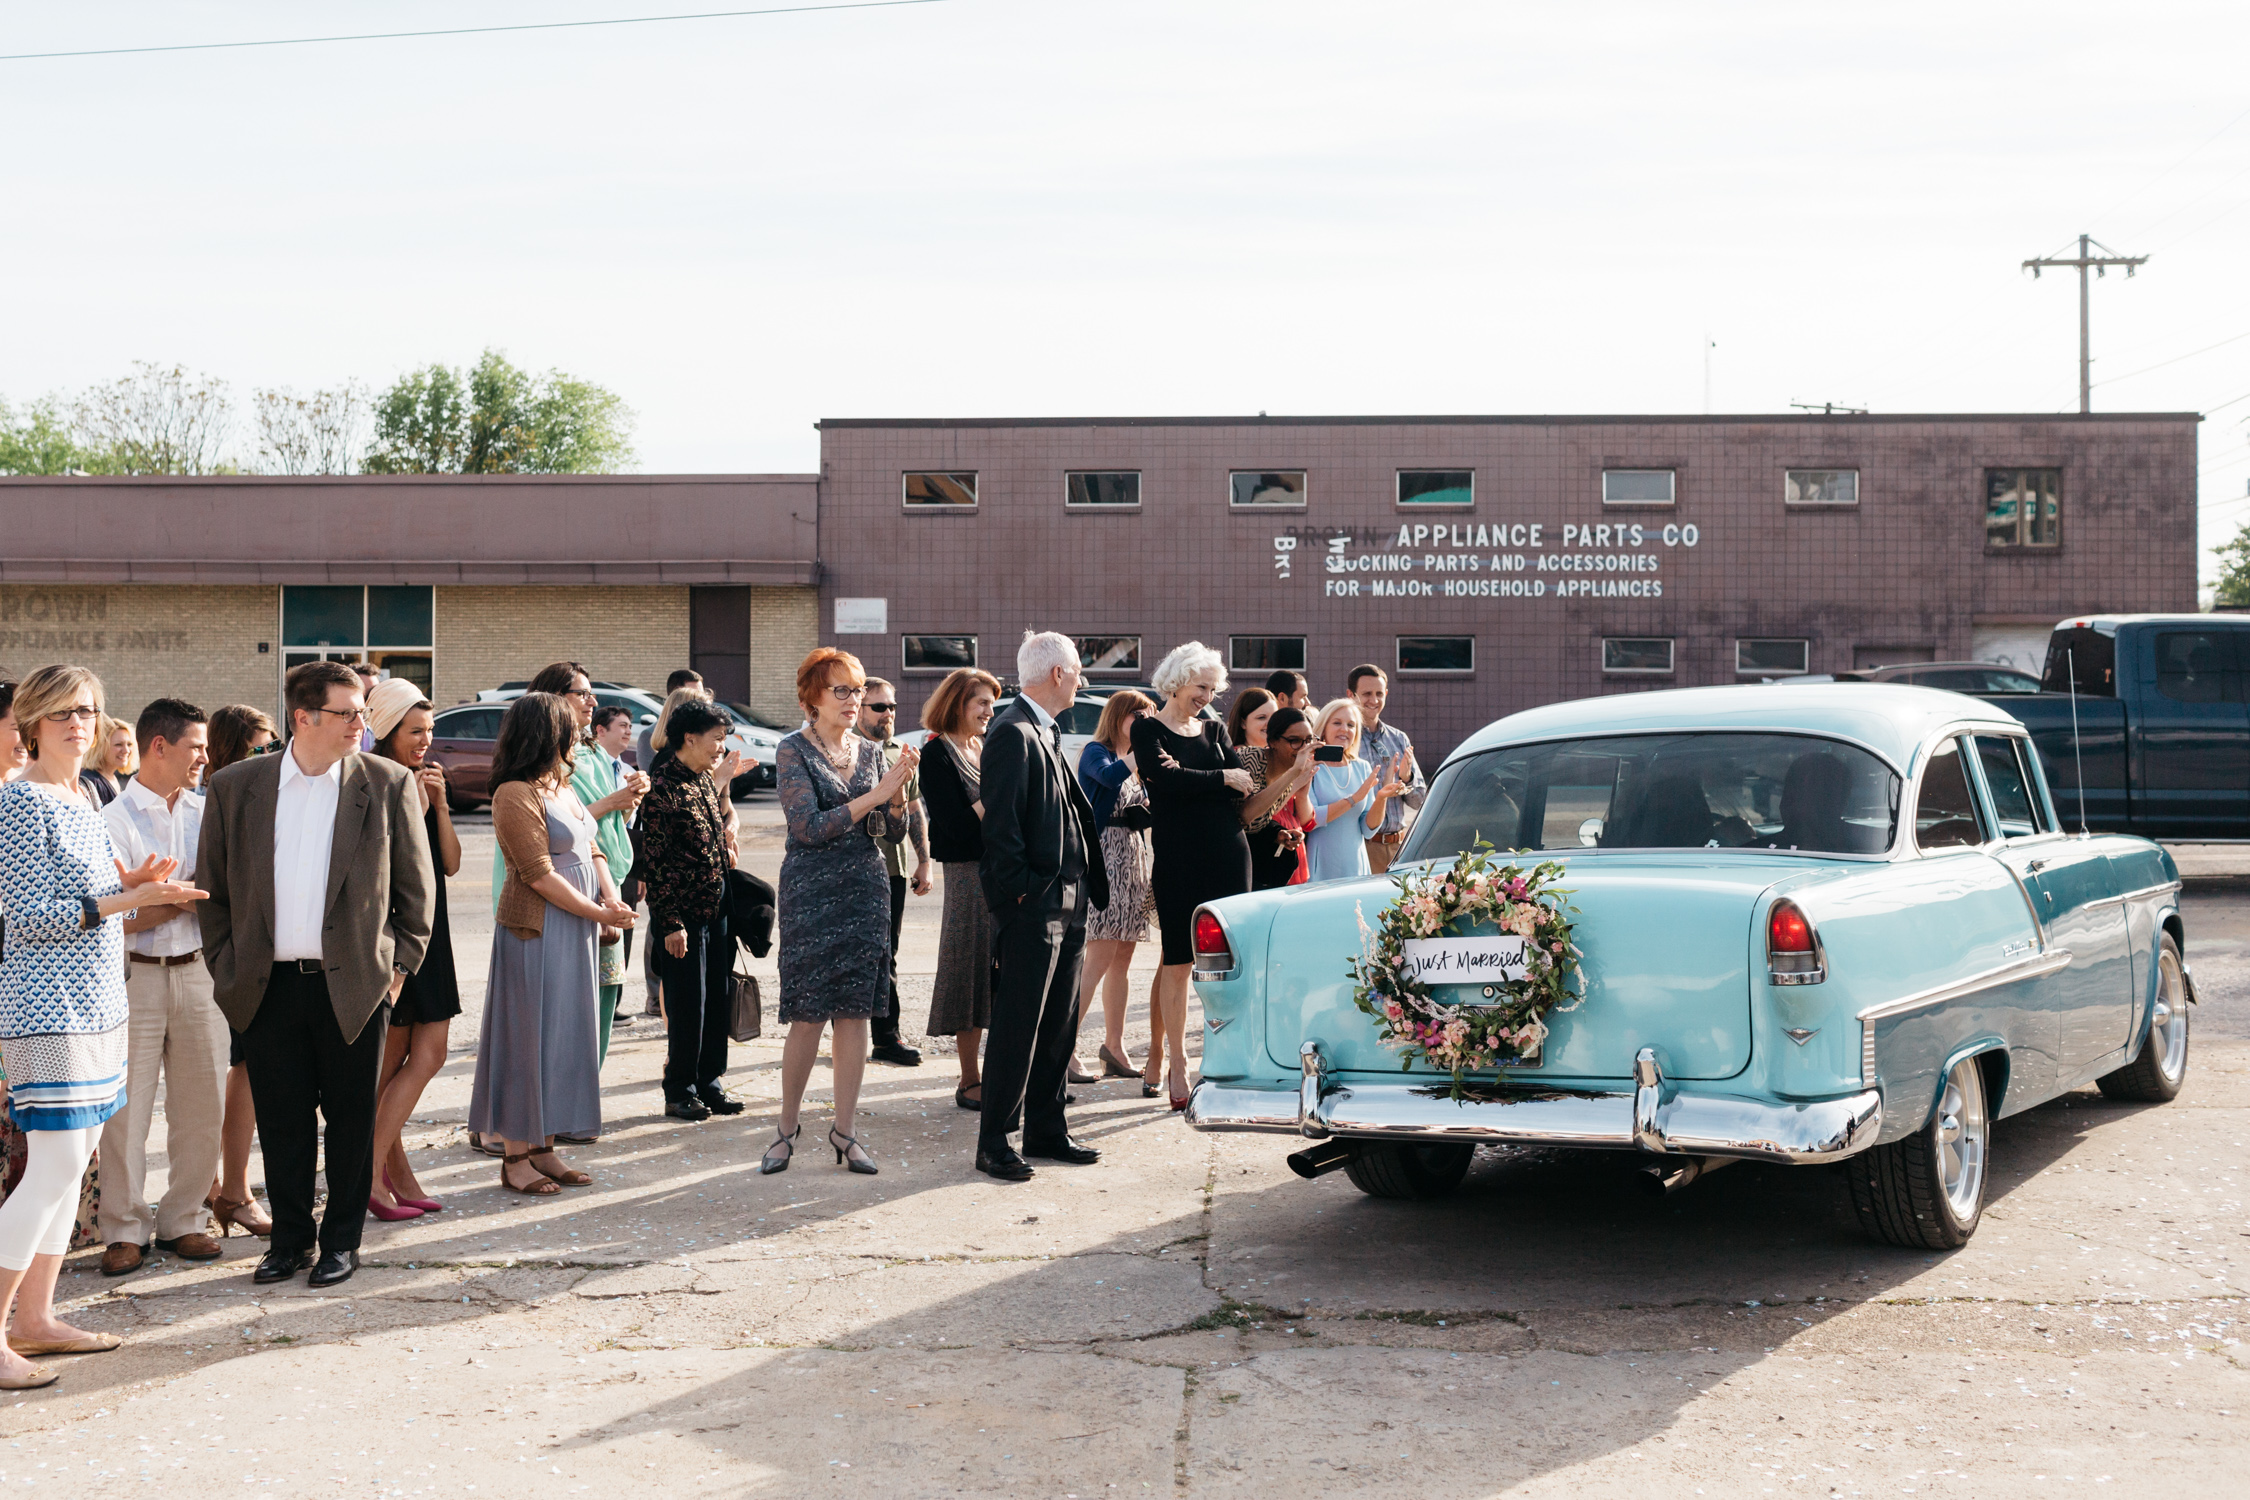 Standard Downtown Knoxville Wedding Venue Central Avenue Happy Holler Blue Car